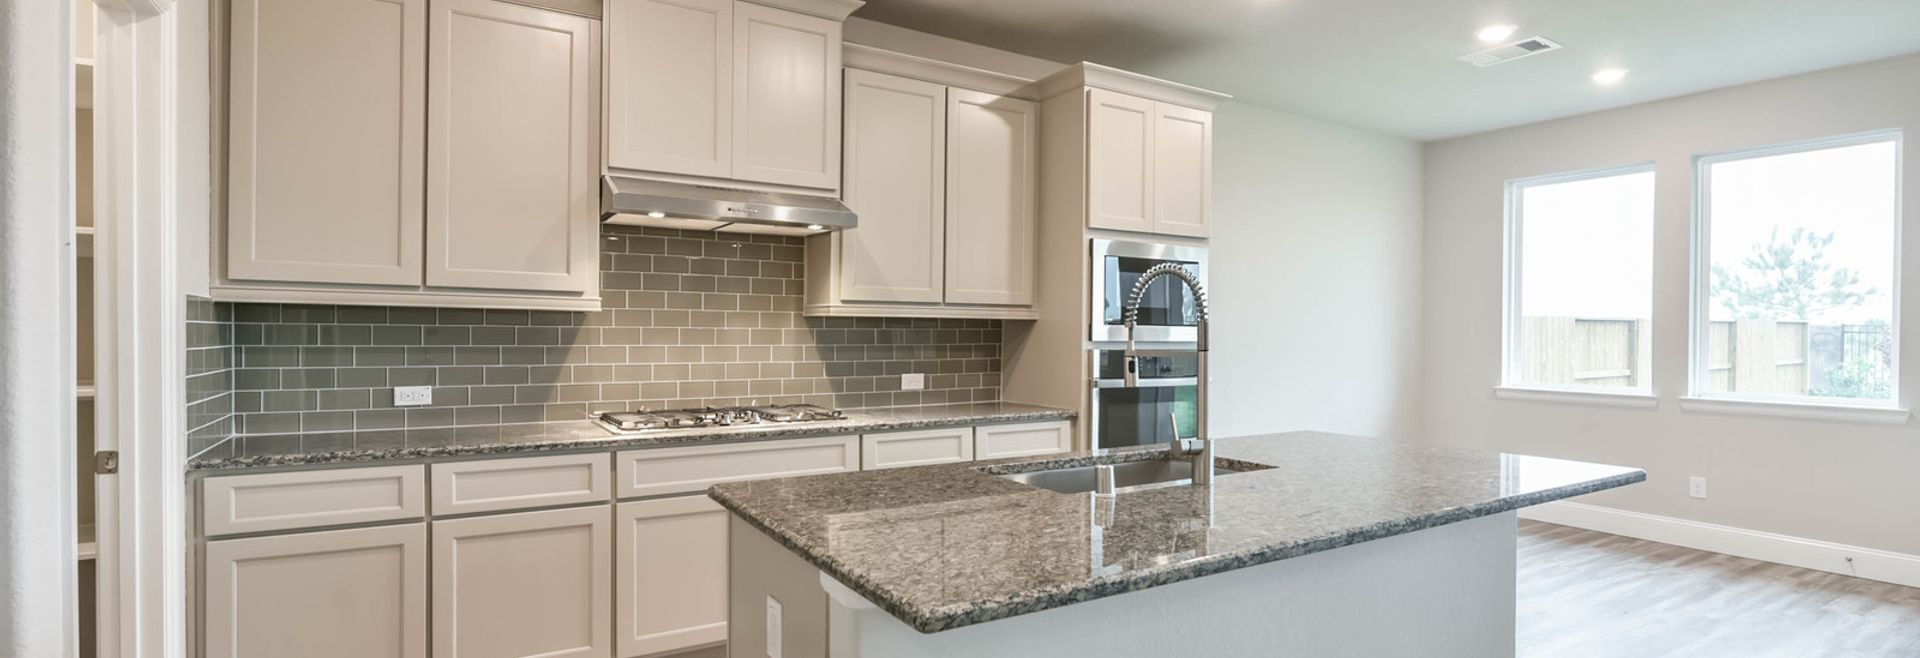 Kitchen featured in the Plan 4069 By Shea Homes in Houston, TX